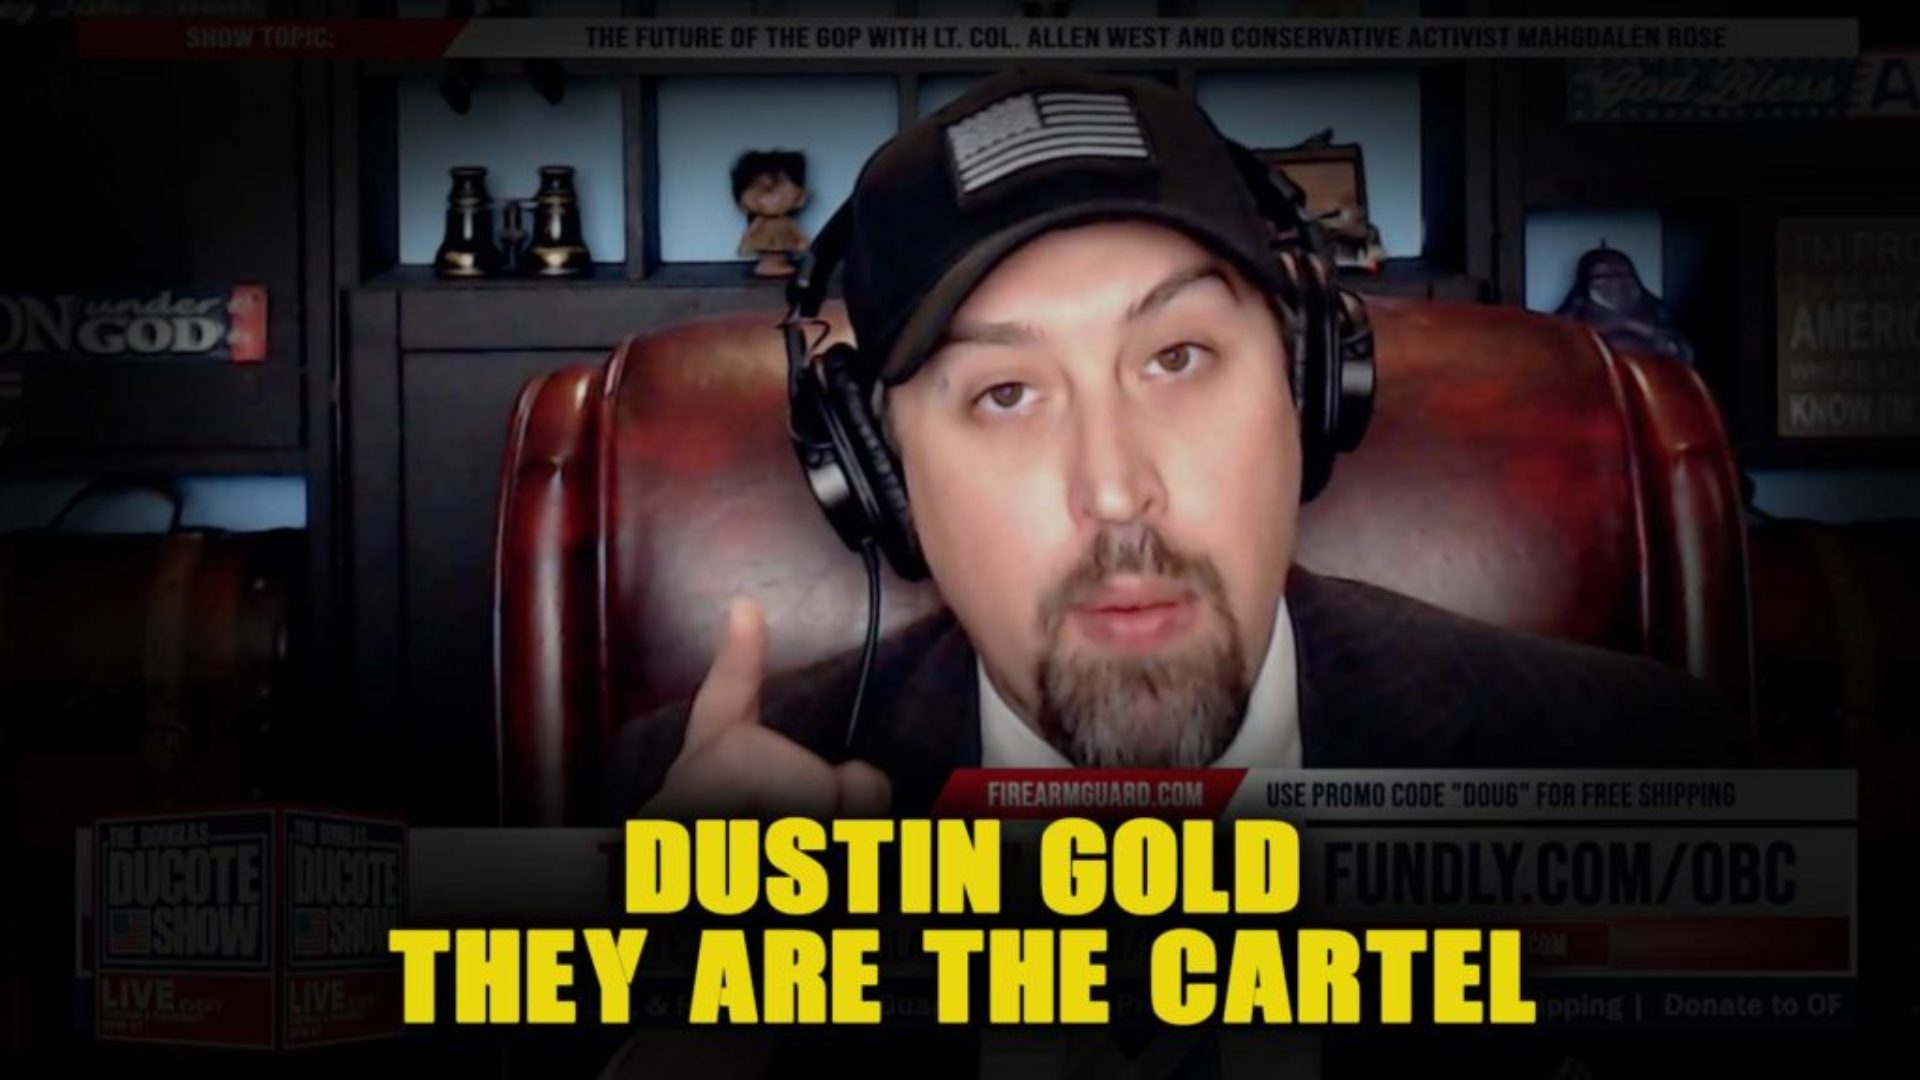 Dustin-Gold-They-Are-The-Cartel